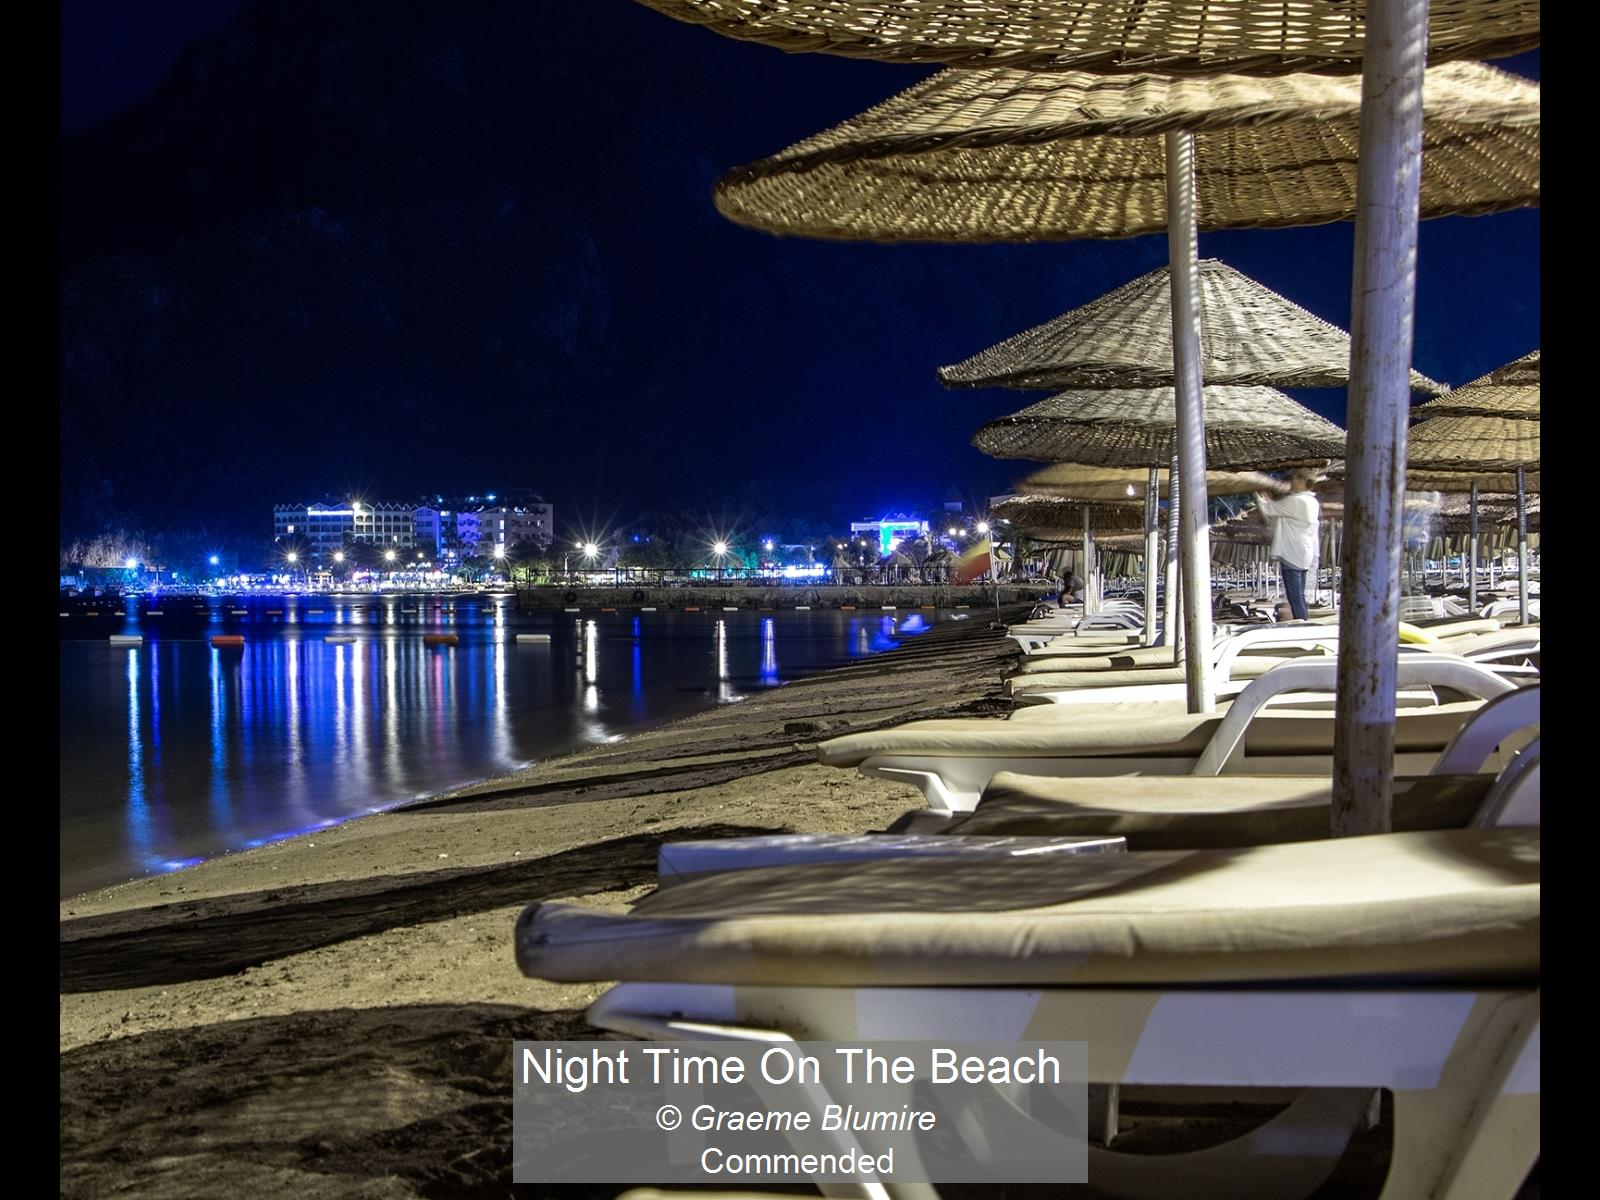 Night Time On The Beach_Graeme Blumire_C